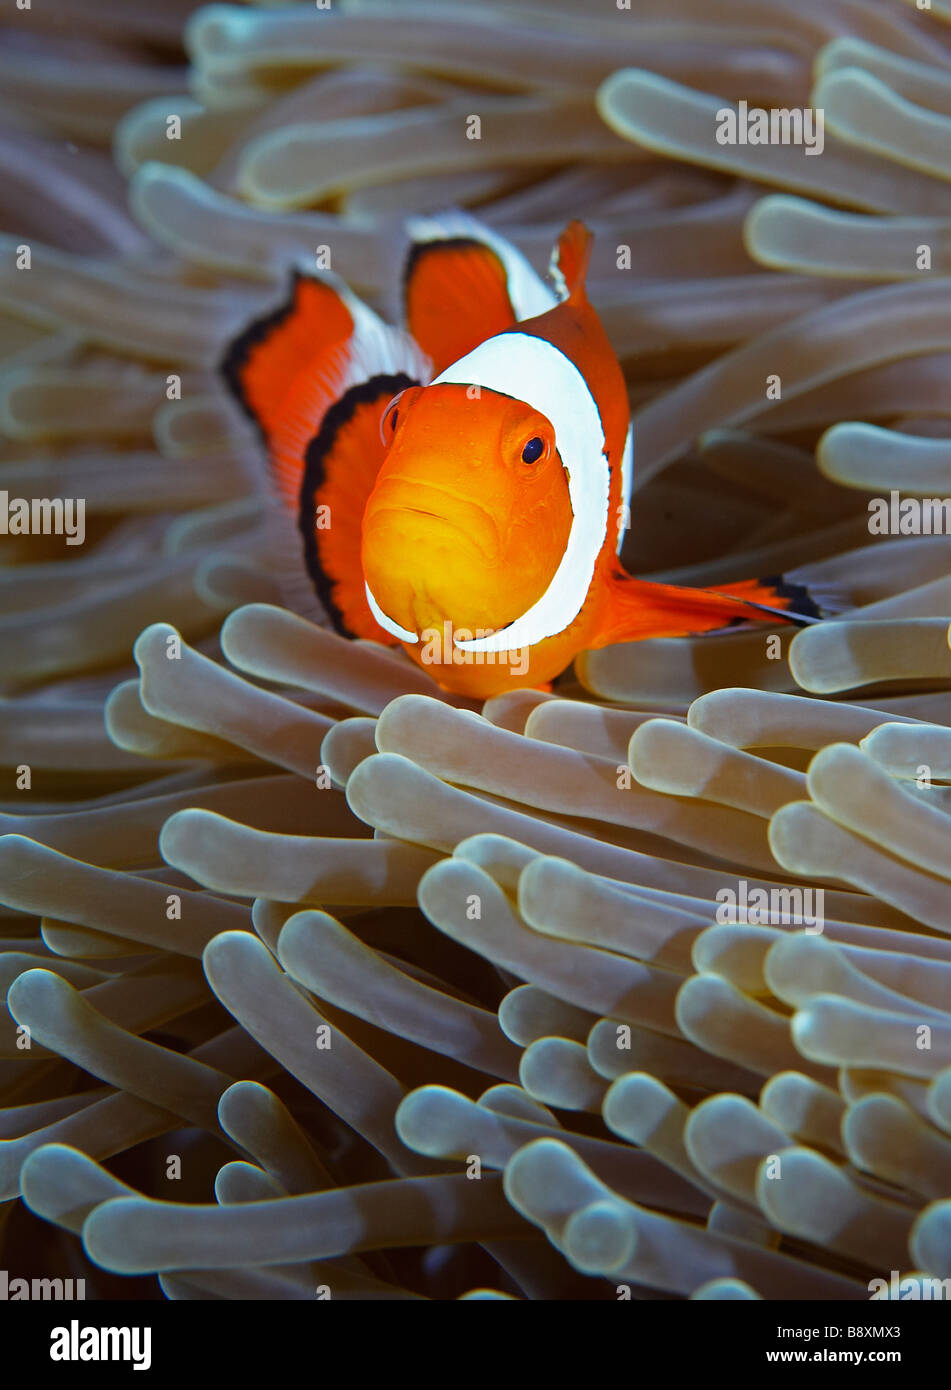 False Clown Anemonefish, Amphiprion ocellaris, Northern Sulawesi, Indonesia Stock Photo